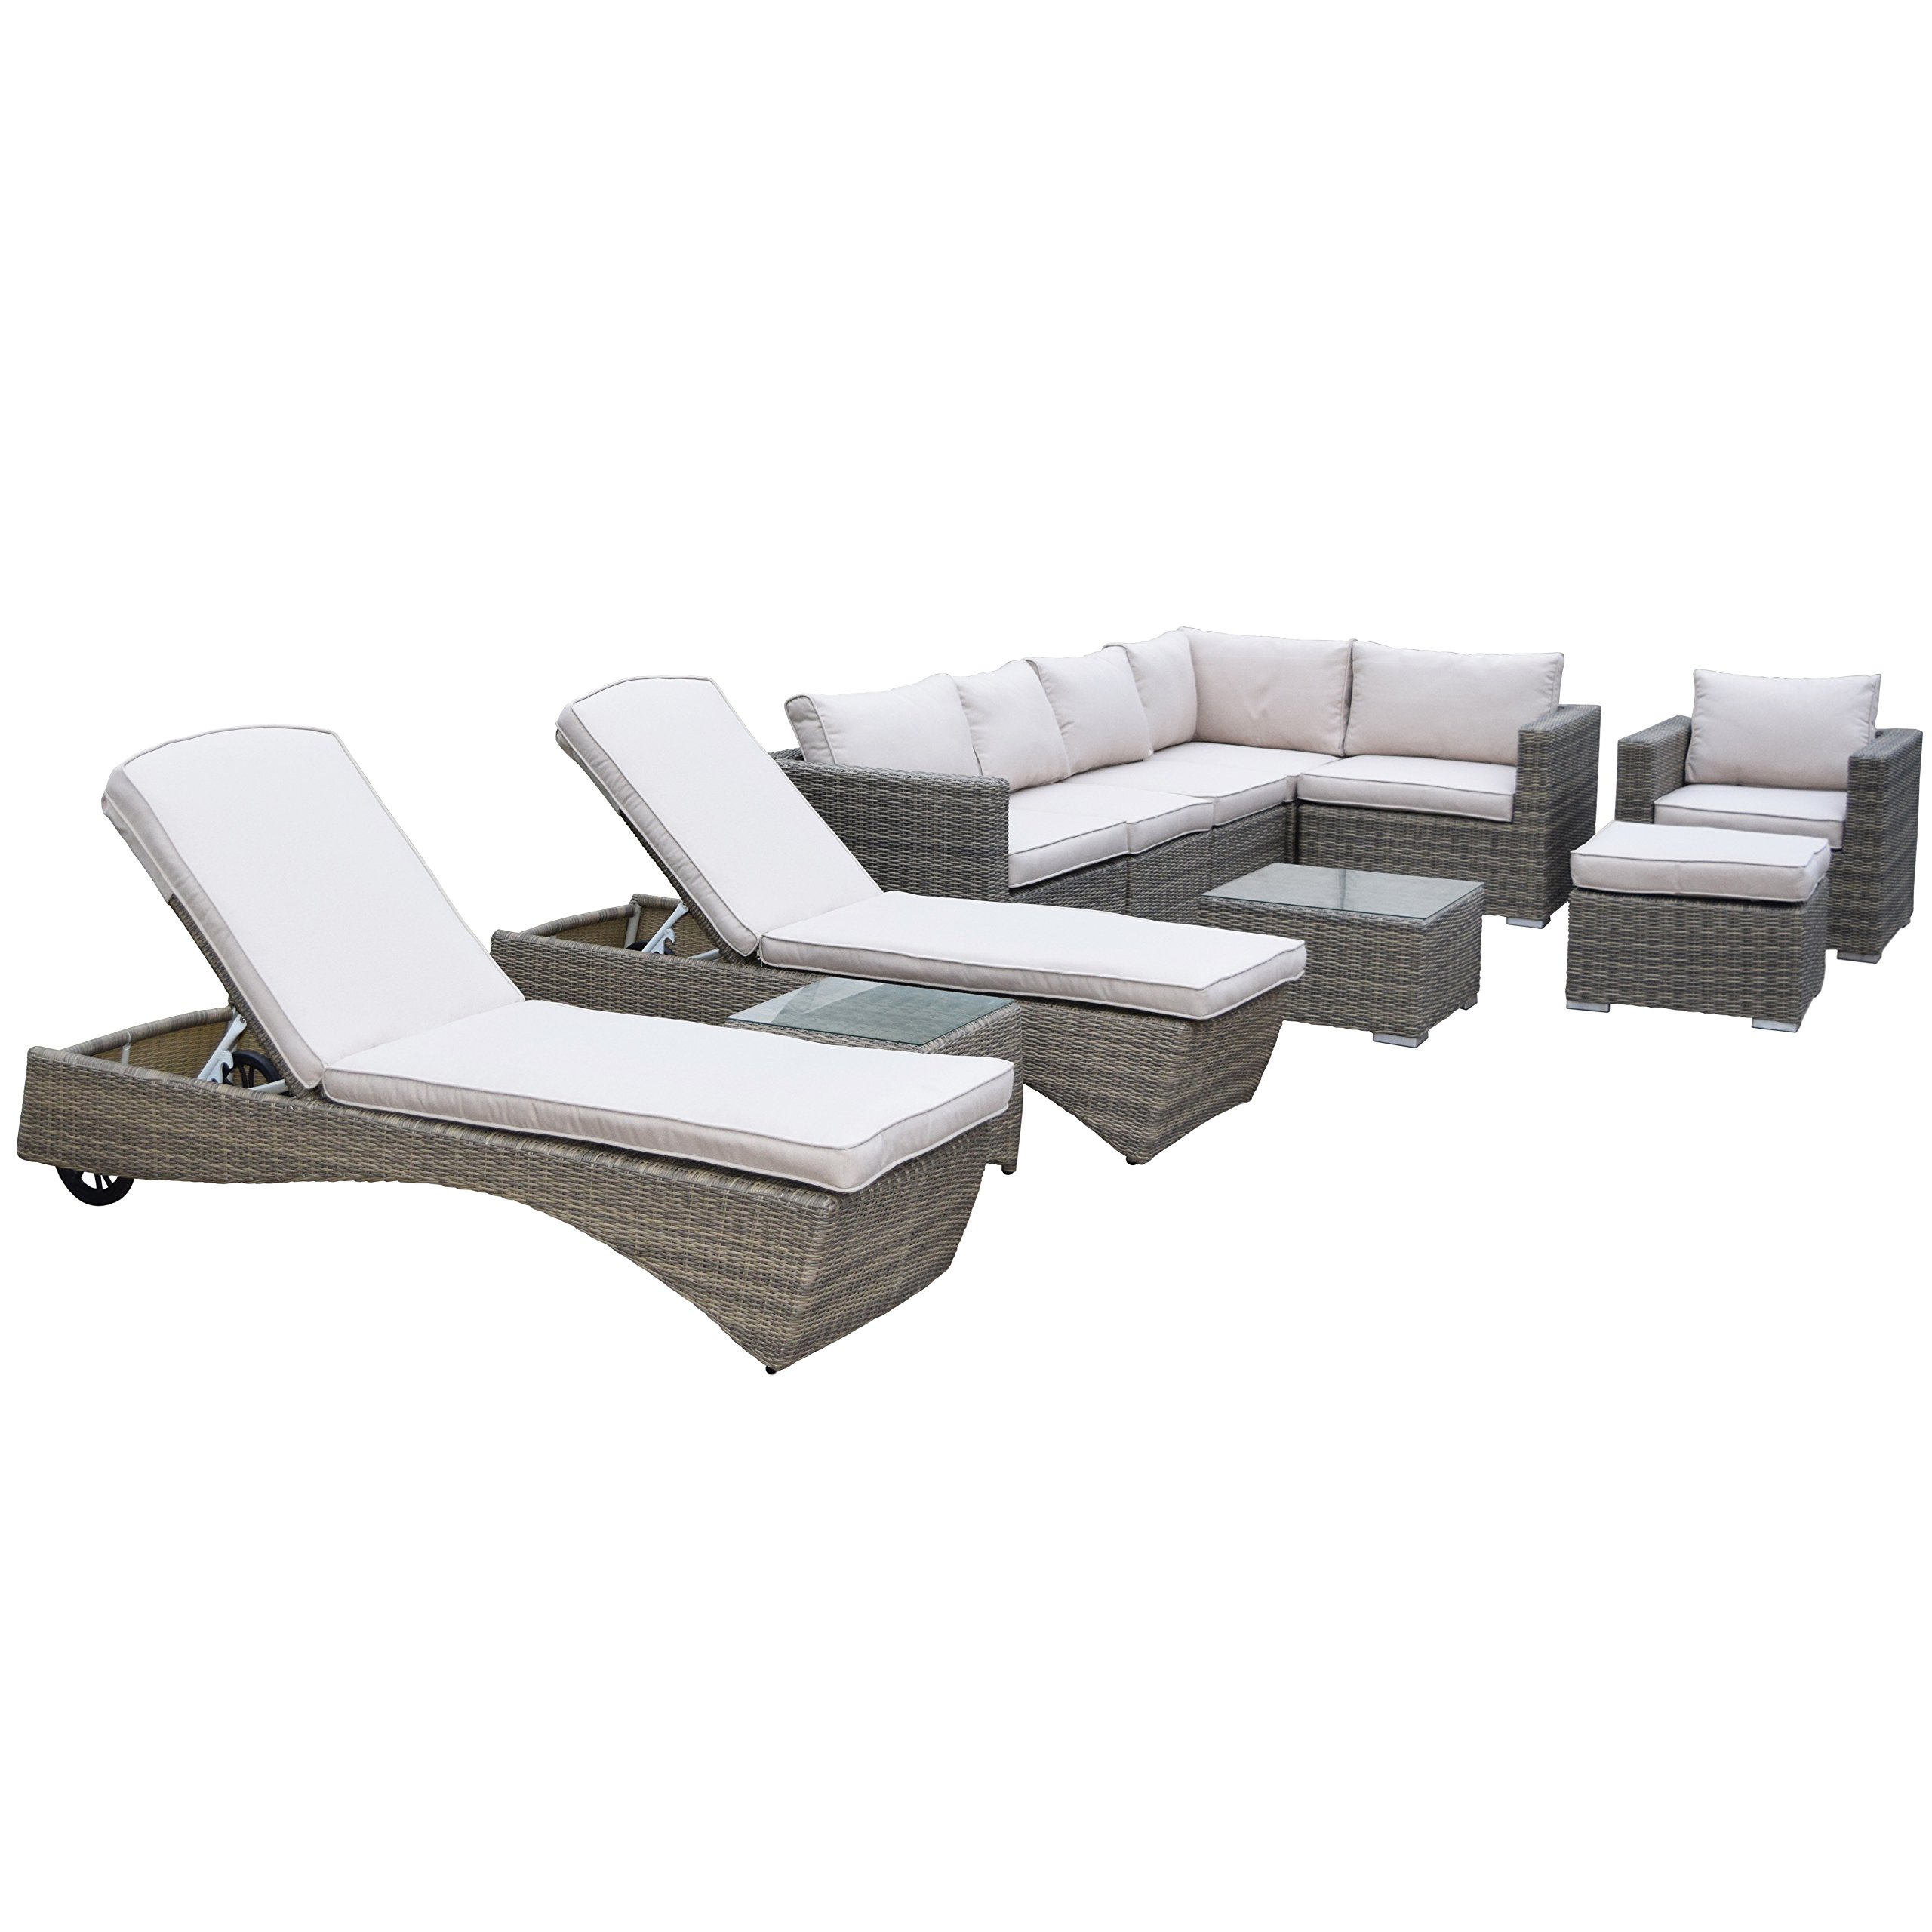 Oakland Living Ice Cooler Carts Borneo Modular All Weather Resin Wicker 11 Piece Set With Club Chair Ottoman Table Chaise Lounge Set Pillows Earth Tone Garden Outdoor